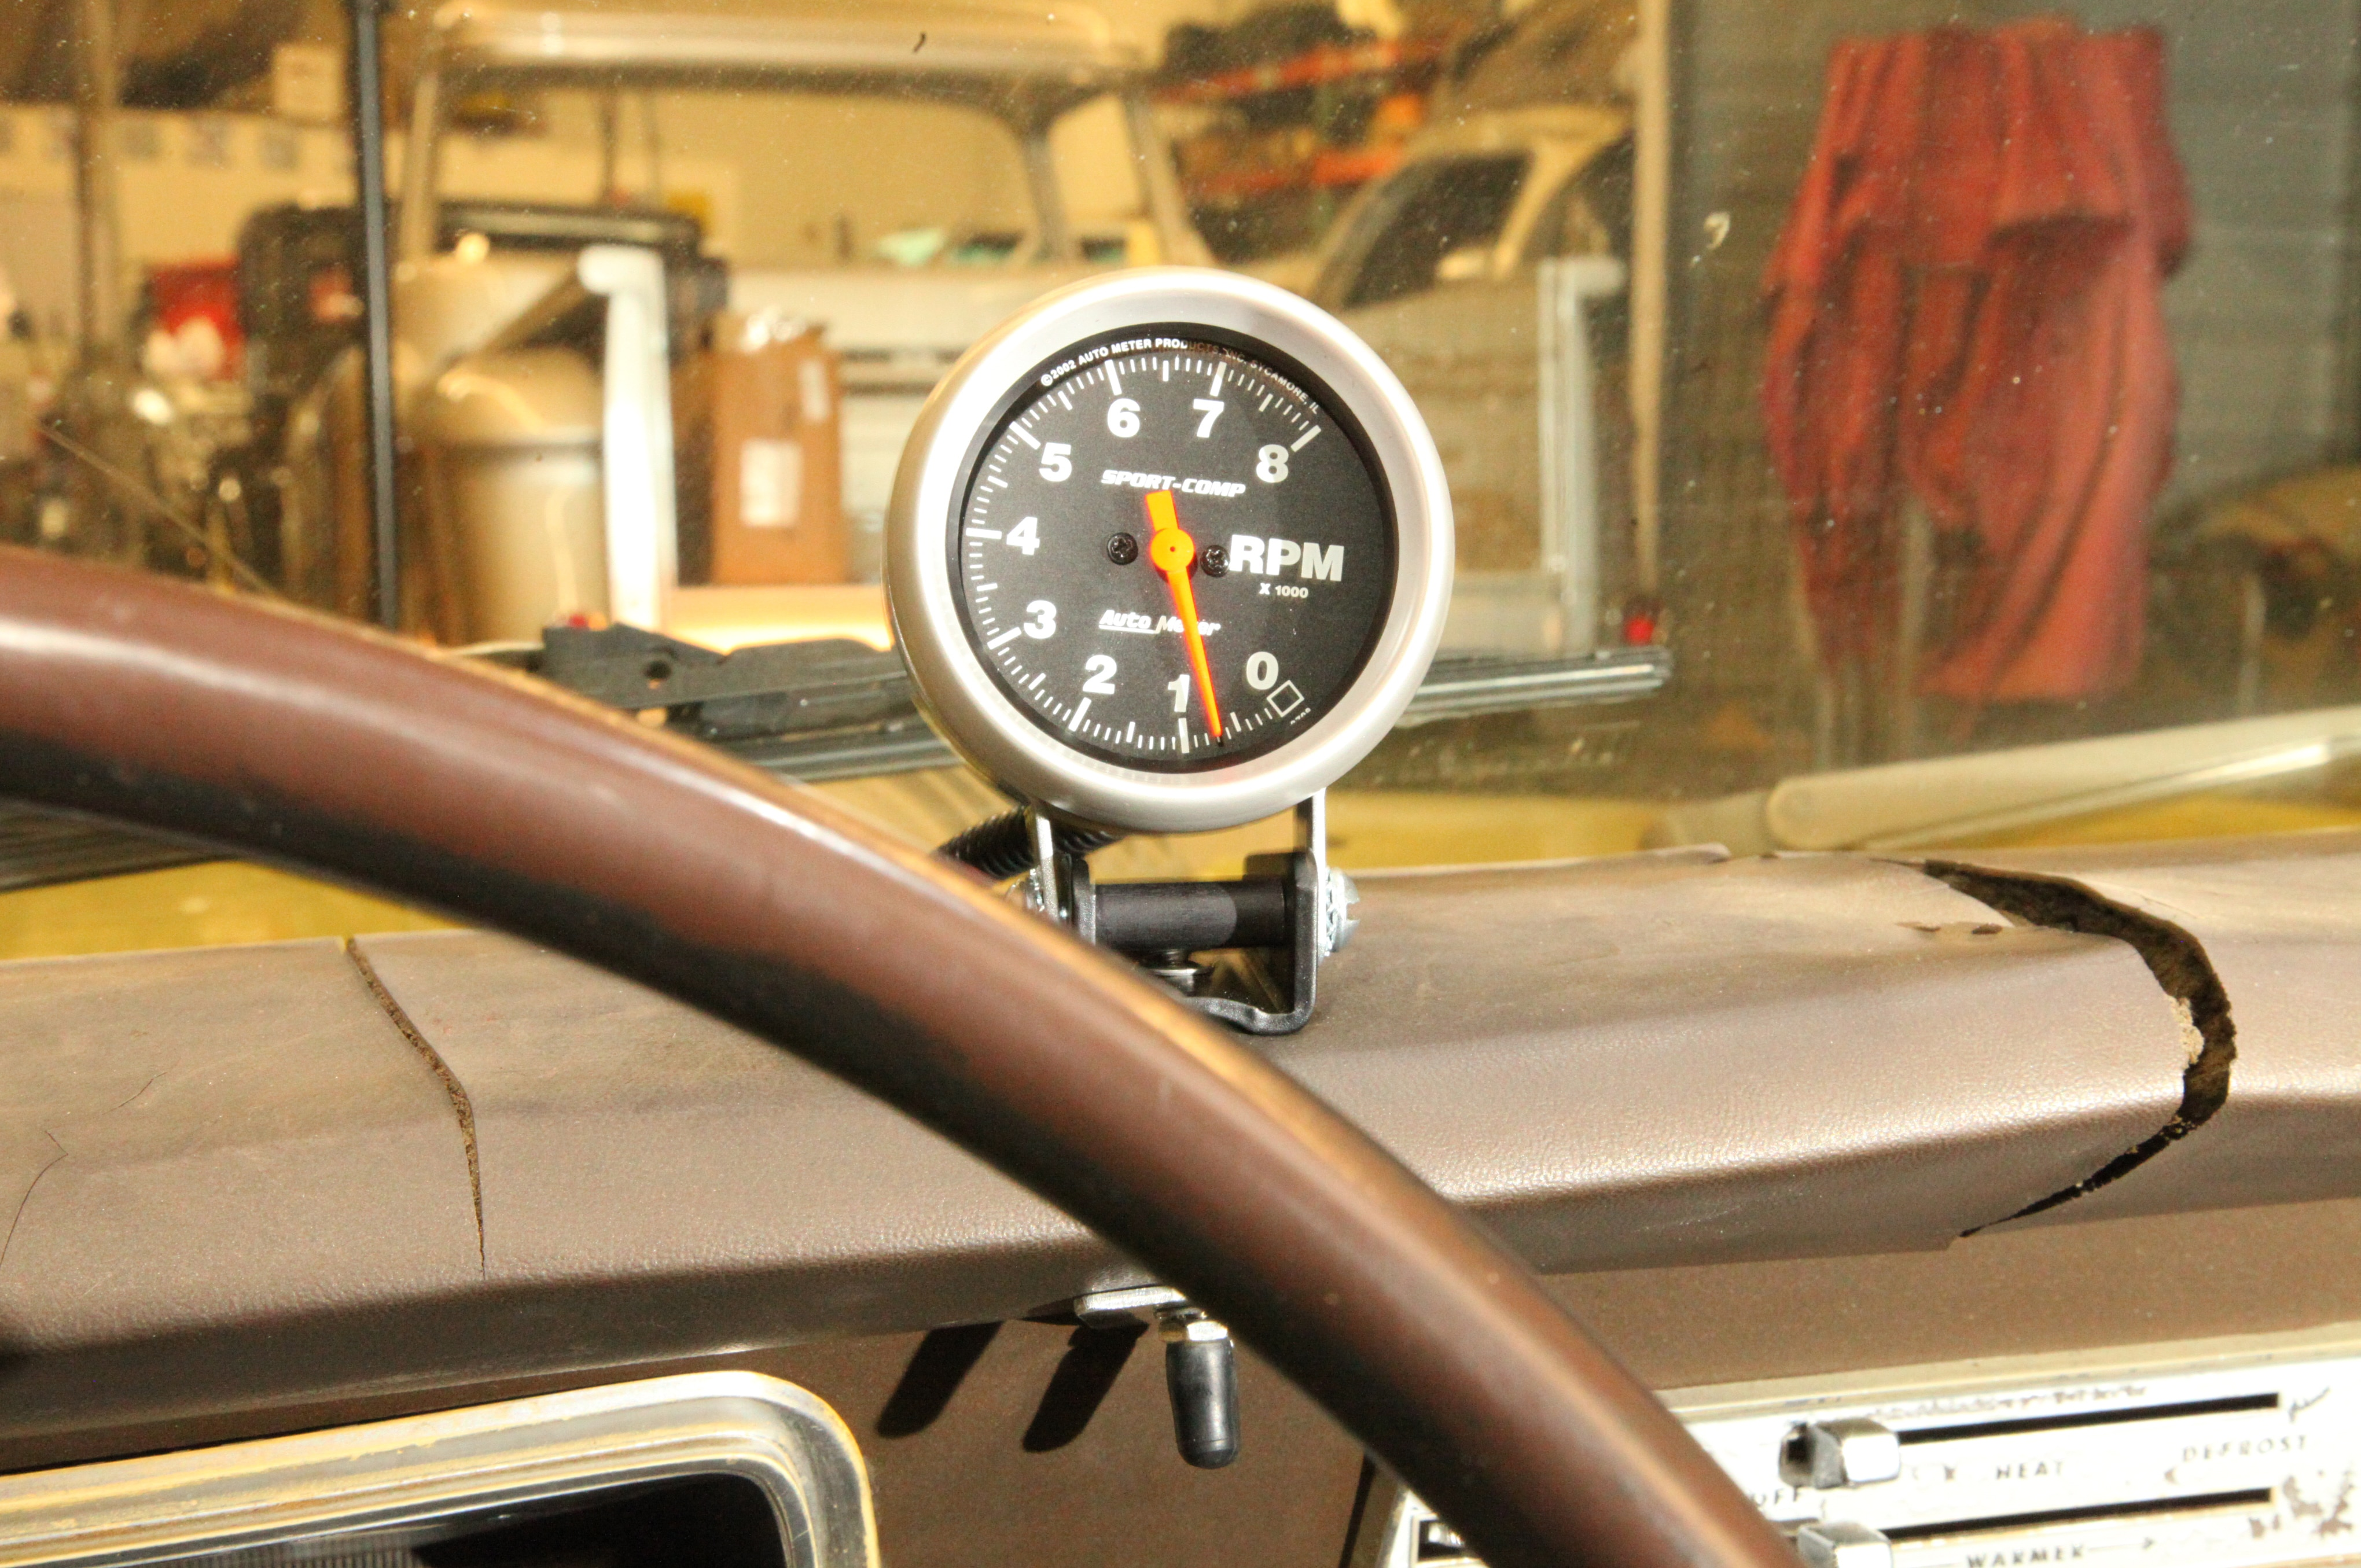 autometer sport comp tach wiring diagram drayton lifestyle mid position valve auto meter tachometer it on hot rod network